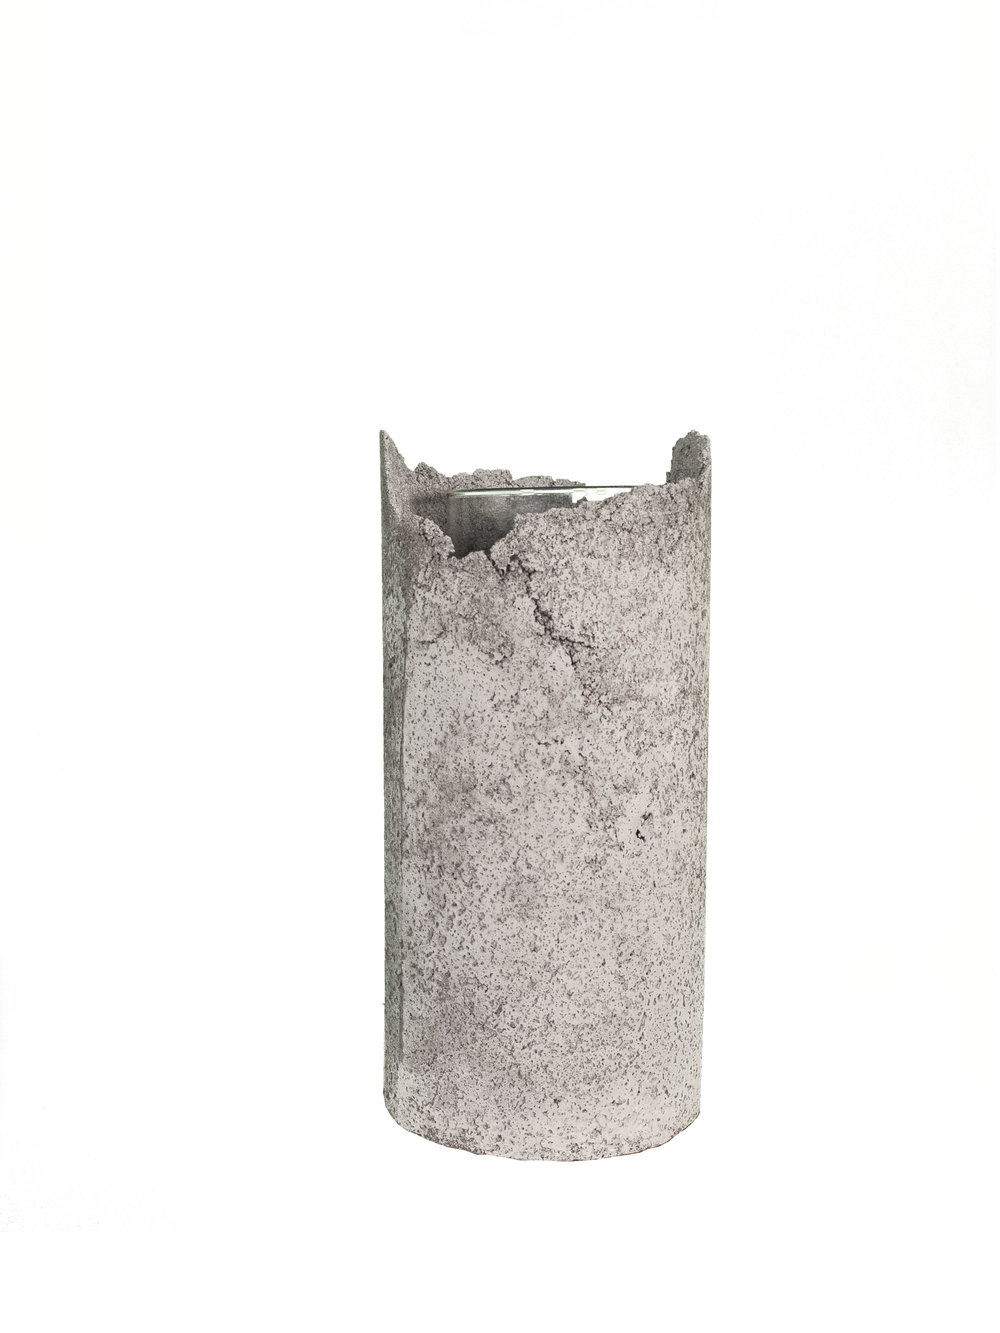 FULO - bare vase, white background1.jpg